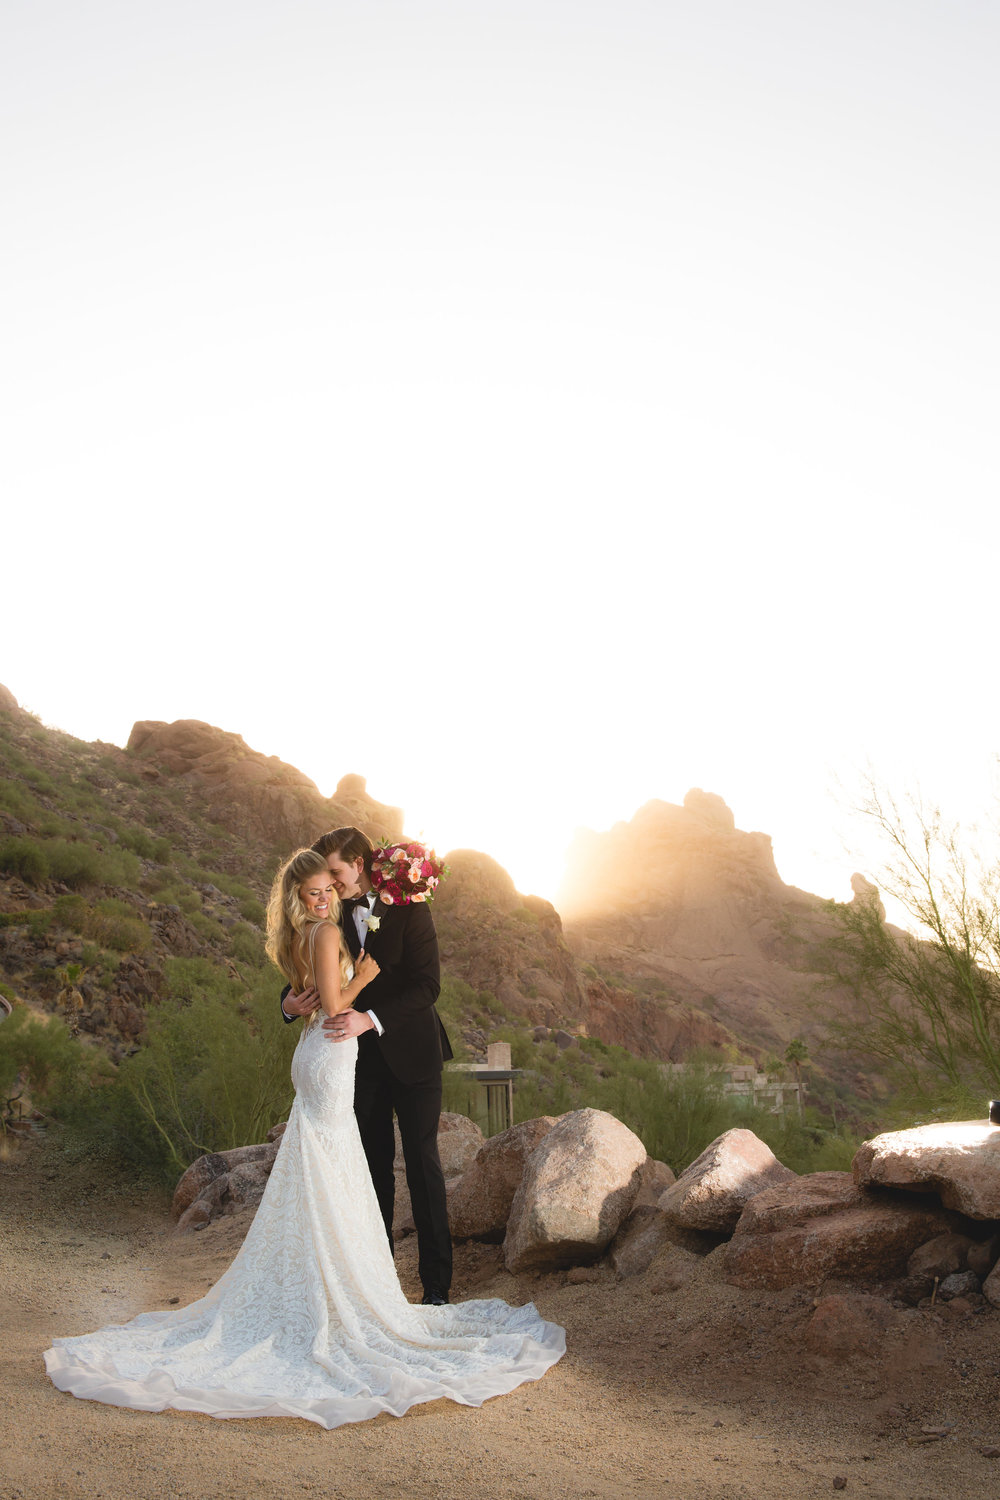 ScottsdalePhotographersWedding-400.jpg